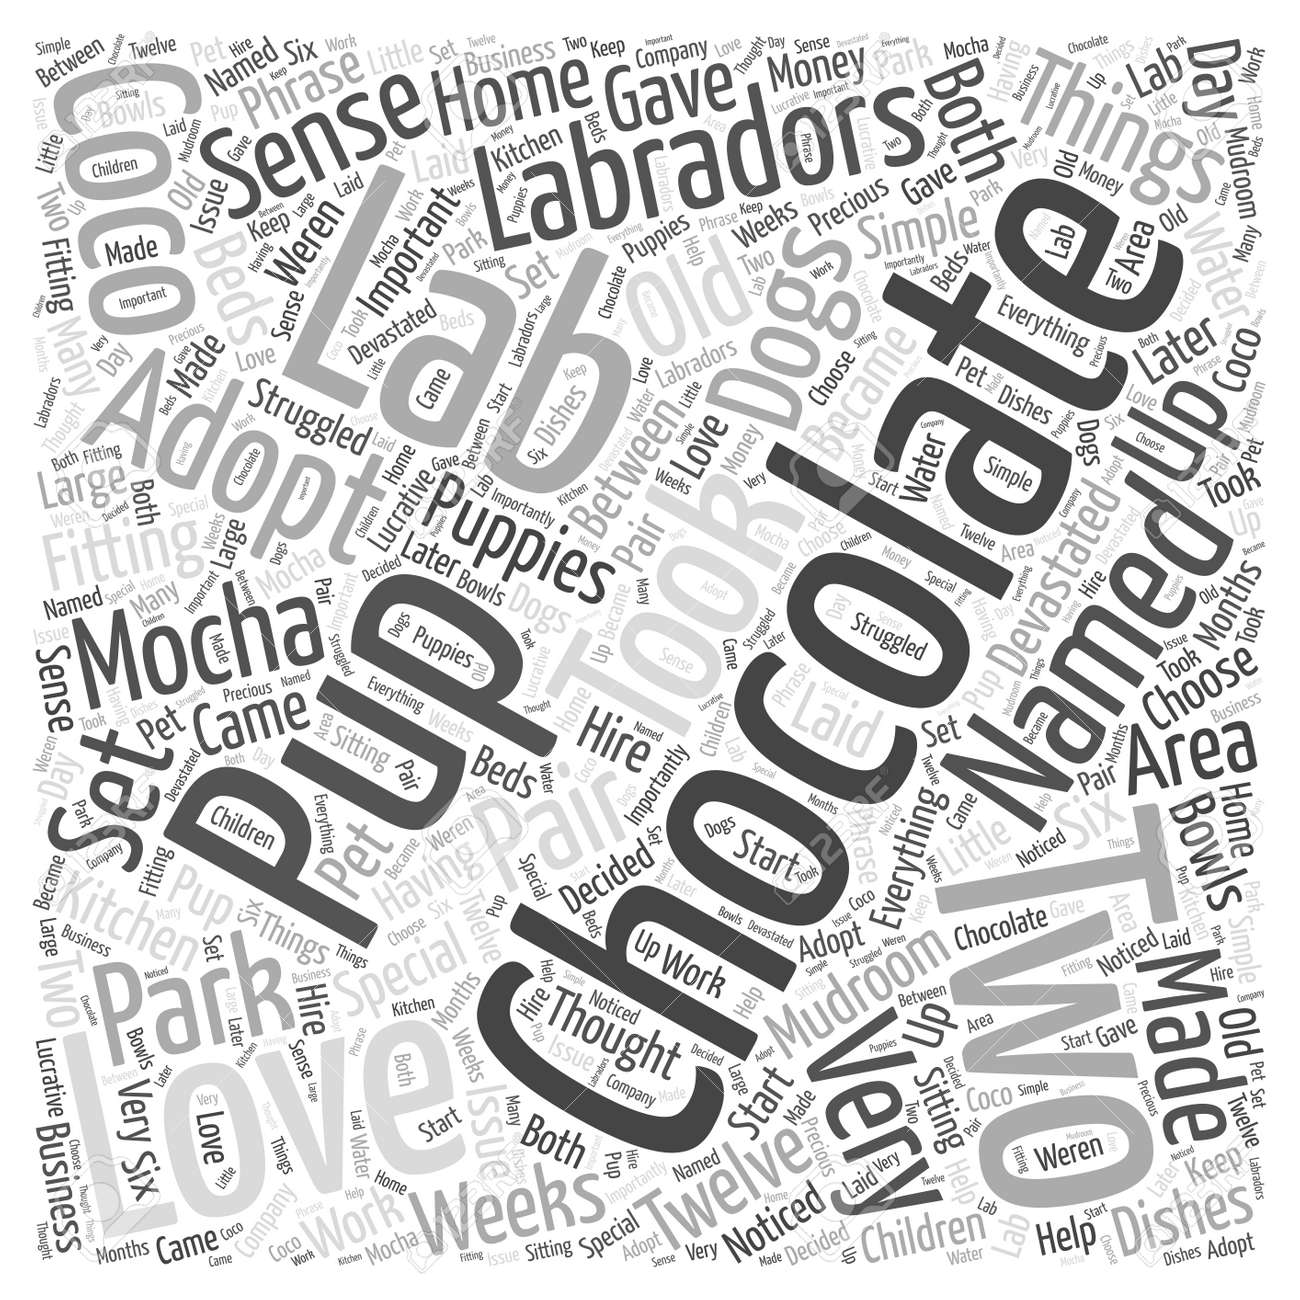 chocholate lab word cloud concept royalty free cliparts vectors Veterinary Laboratory Equipment Lab chocholate lab word cloud concept stock vector 73728886